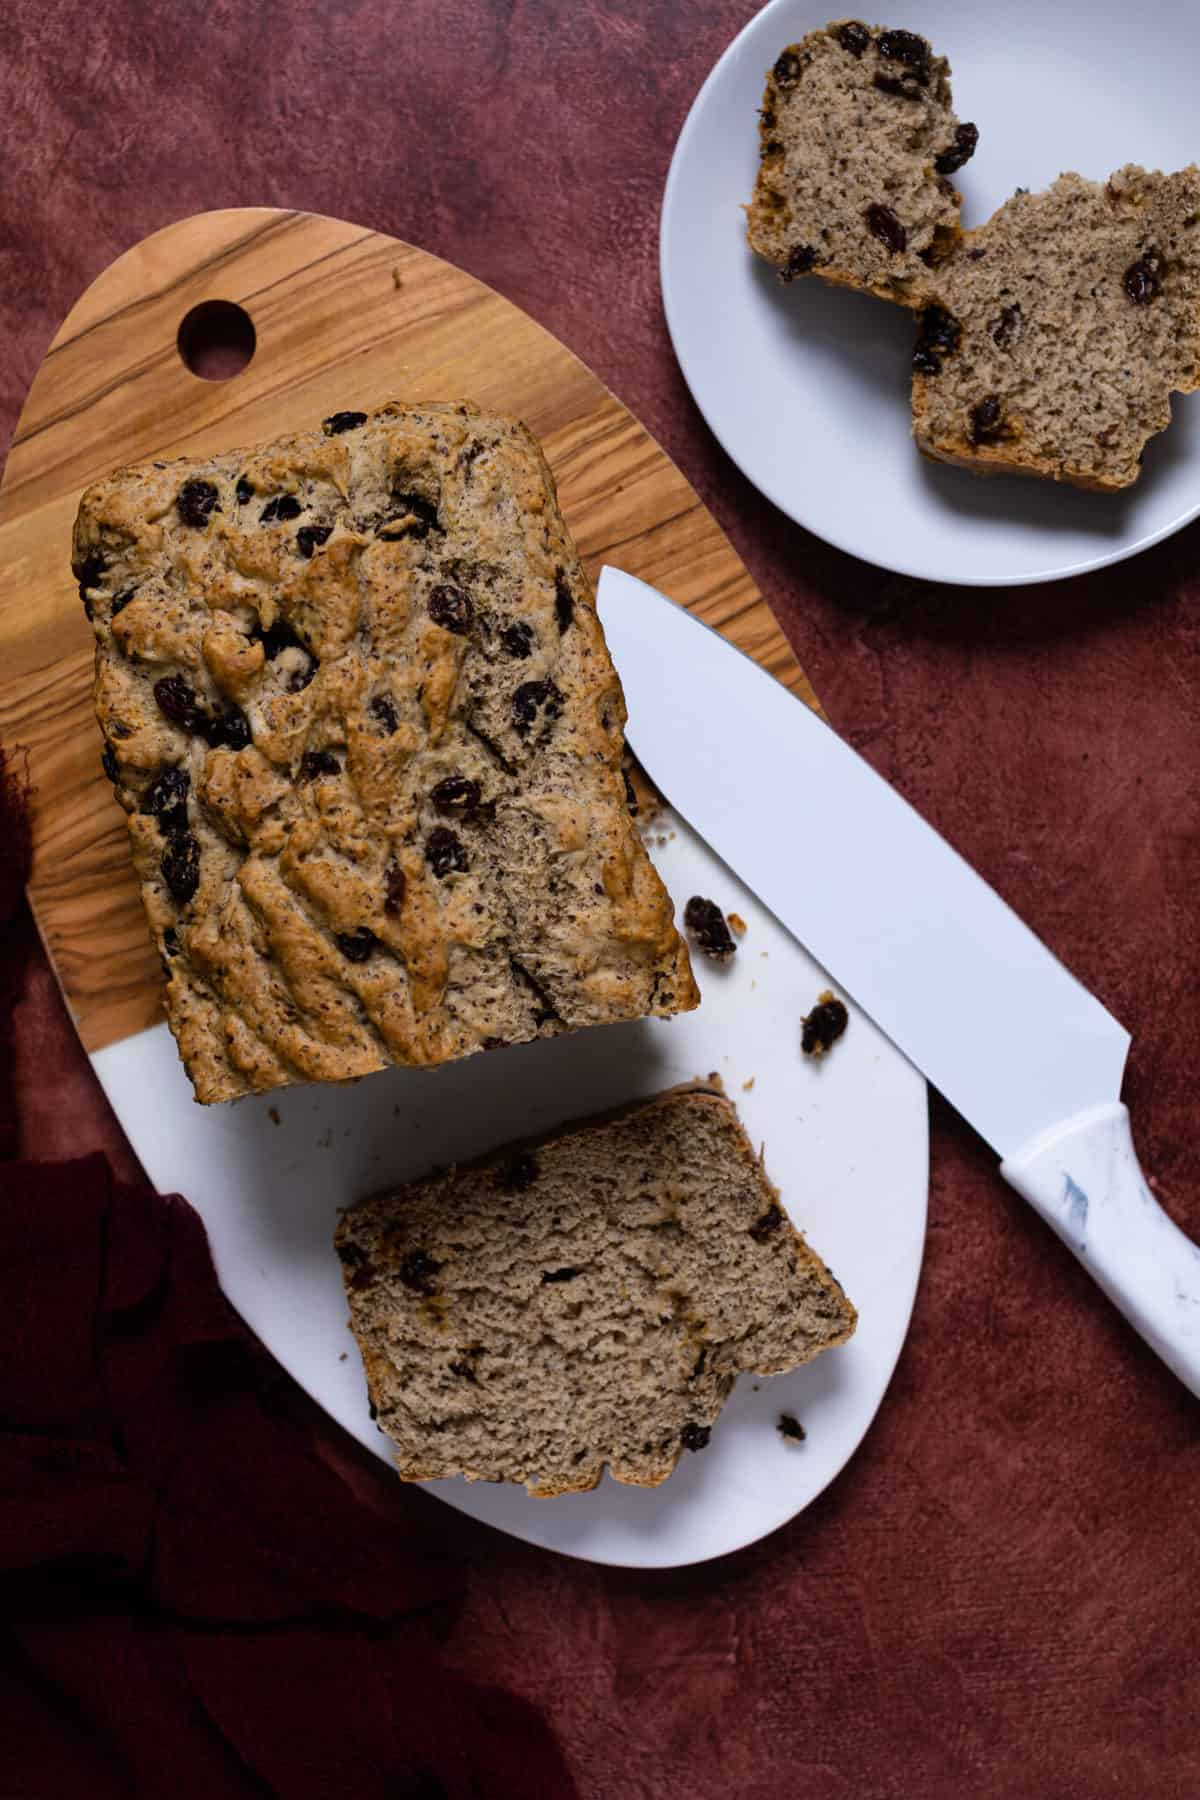 Homemade Rum + Raisin Bread on a wooden cutting board with a slice cut away